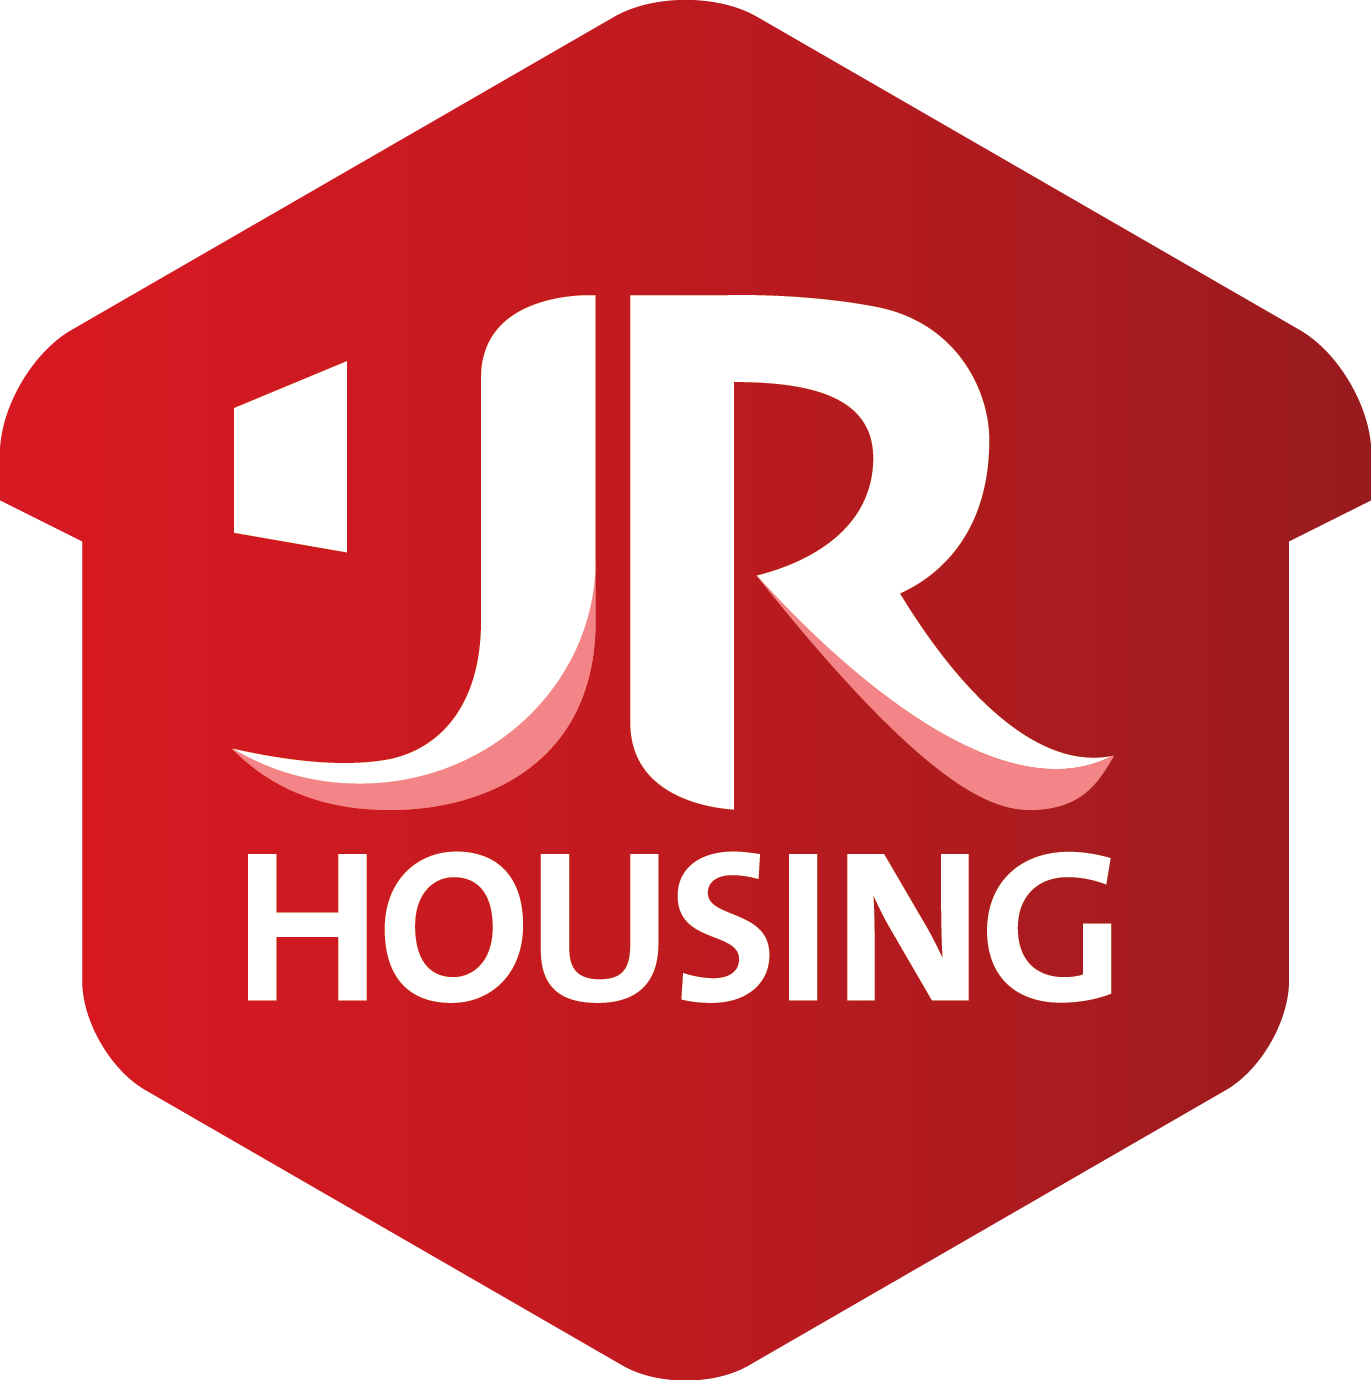 JR Urban Infracon Pvt Ltd